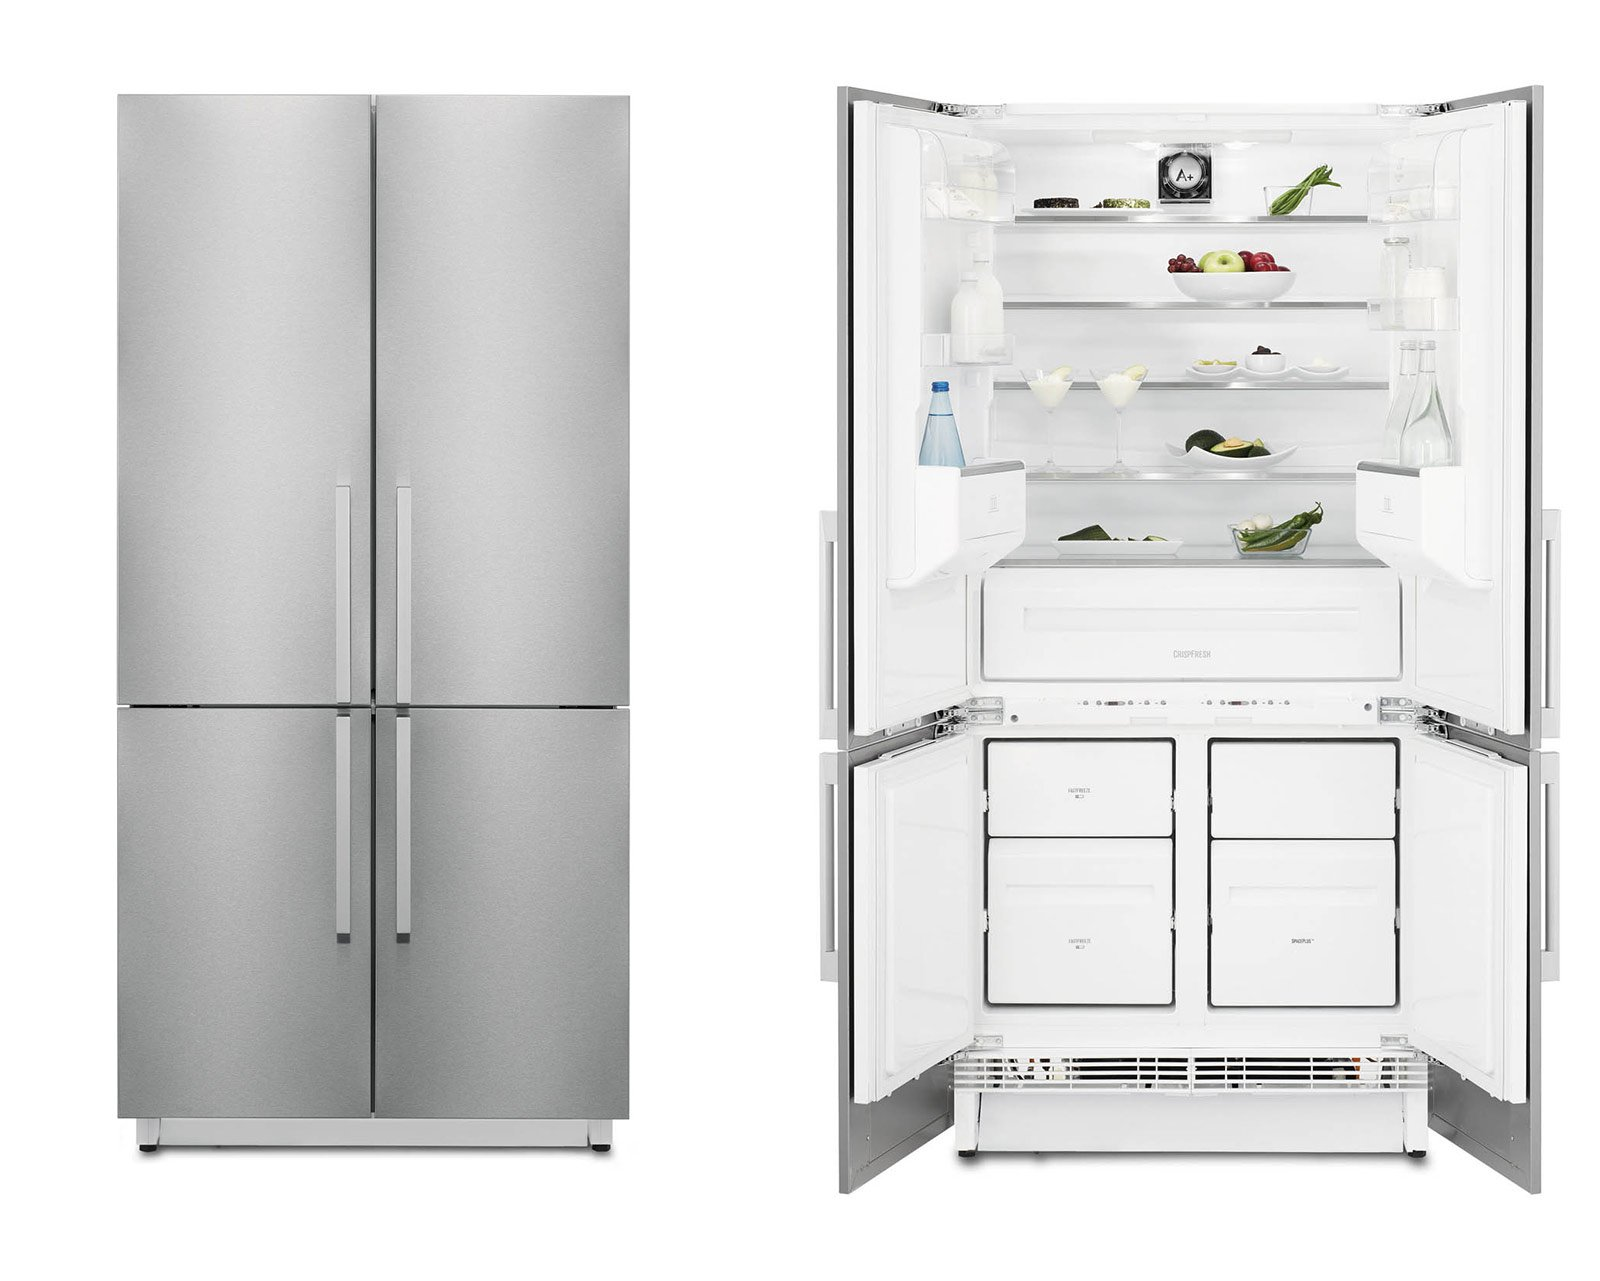 Awesome Rex Frigo Incasso Pictures - Skilifts.us - skilifts.us